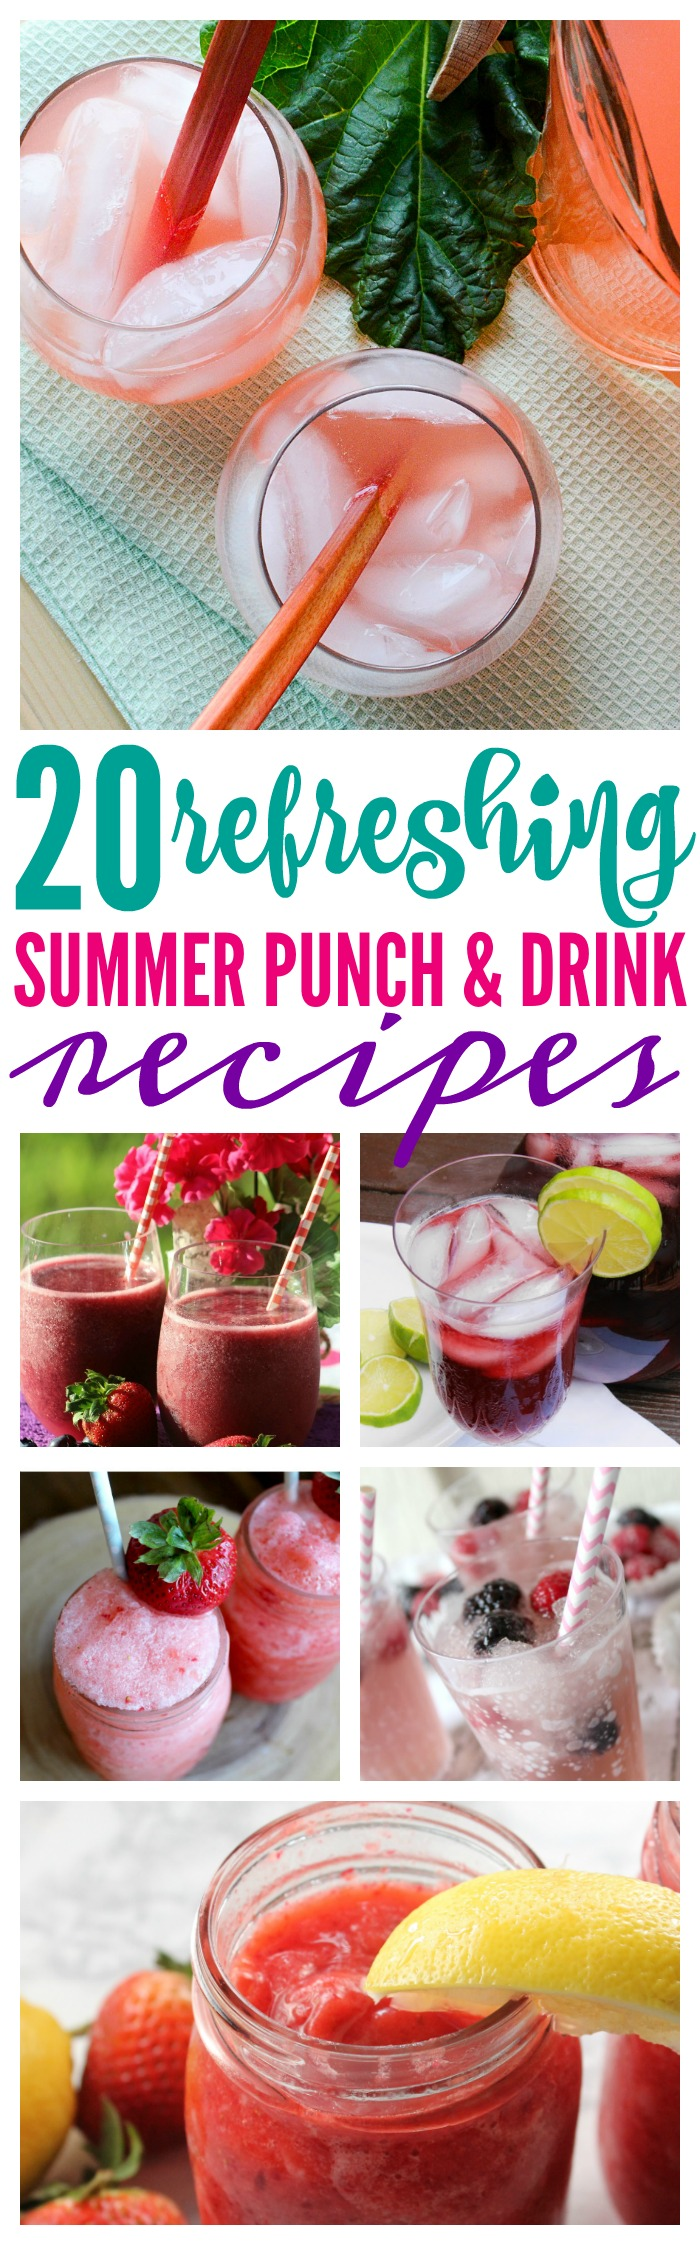 Summer Punch and Drink Recipes! Frozen Drinks, Lemonade, Non-alcoholic, kid friendly, and family favorite refreshing summer drinks that you will LOVE!